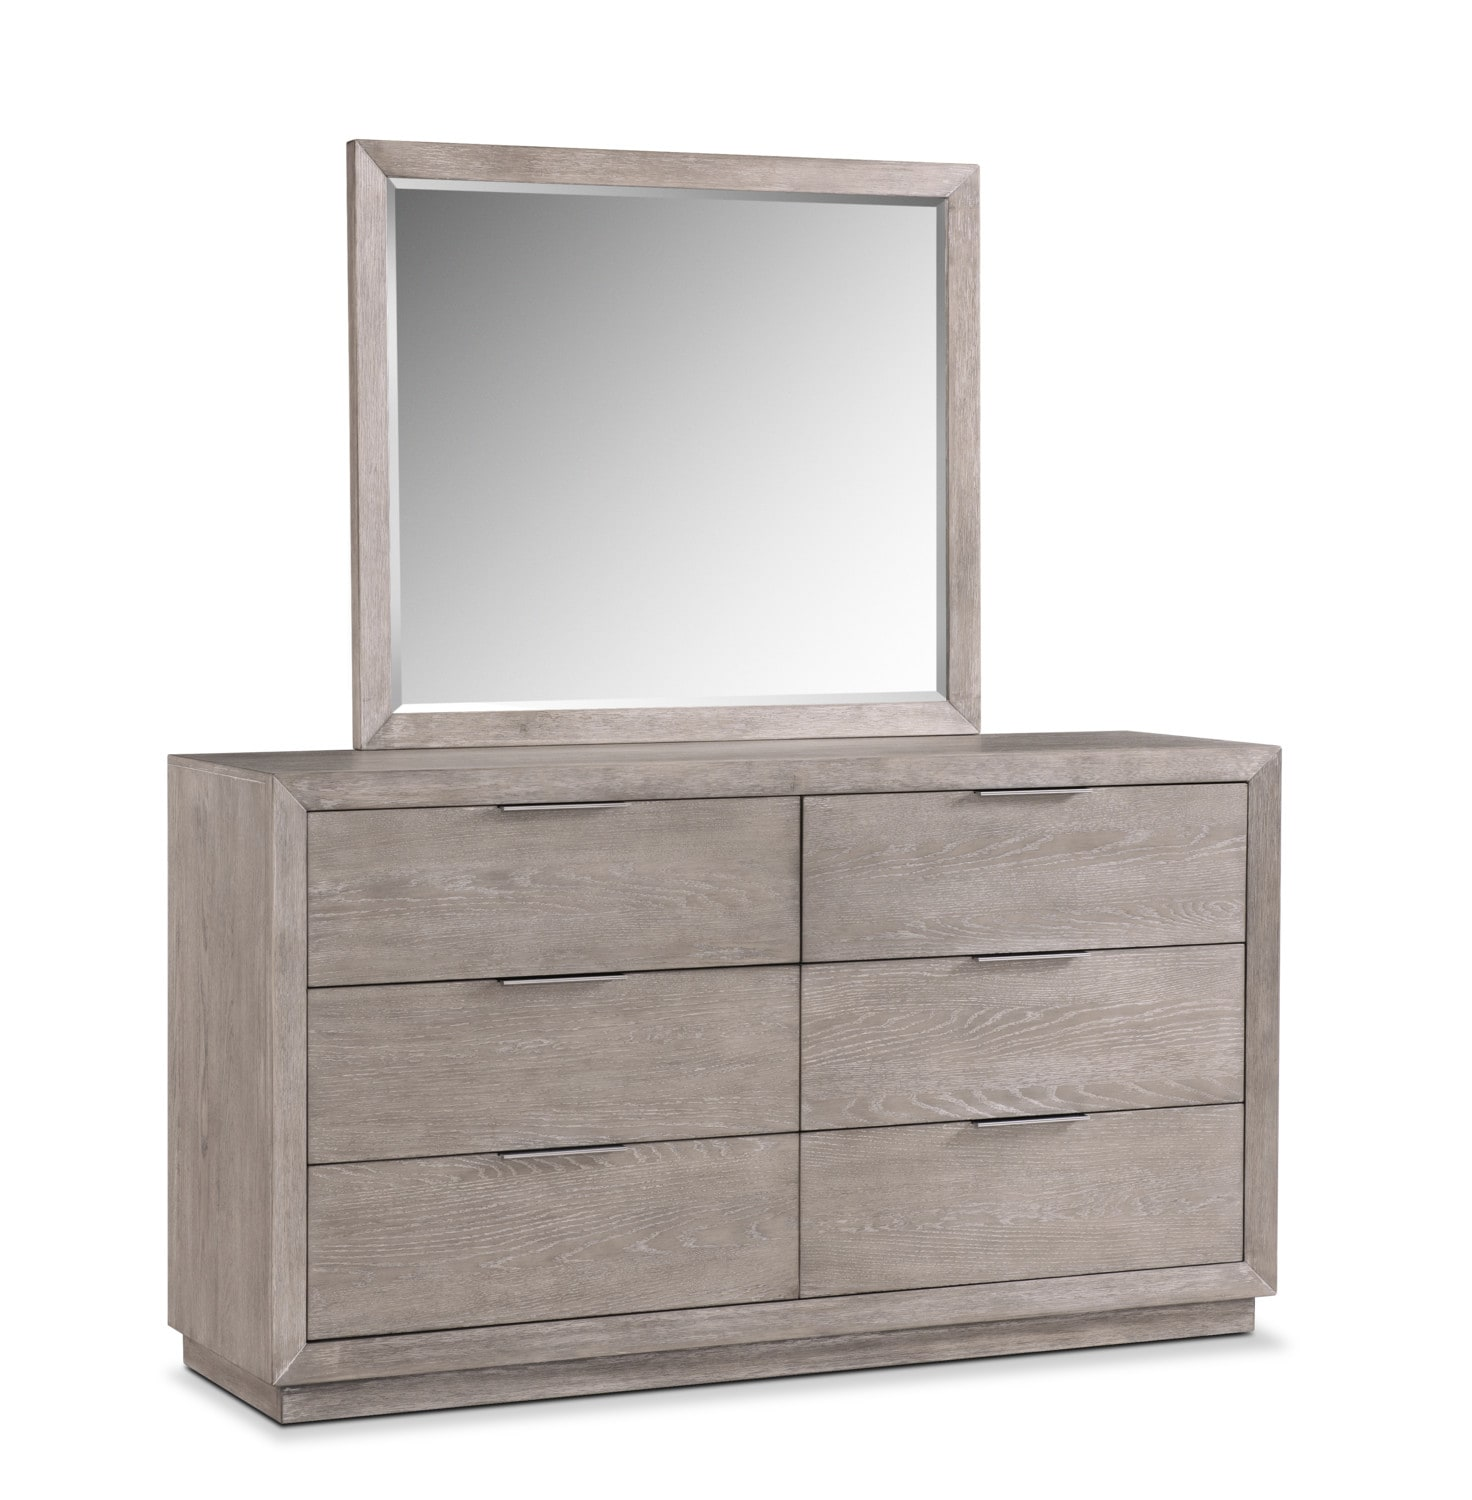 Bedroom Furniture - Zen Dresser and Mirror